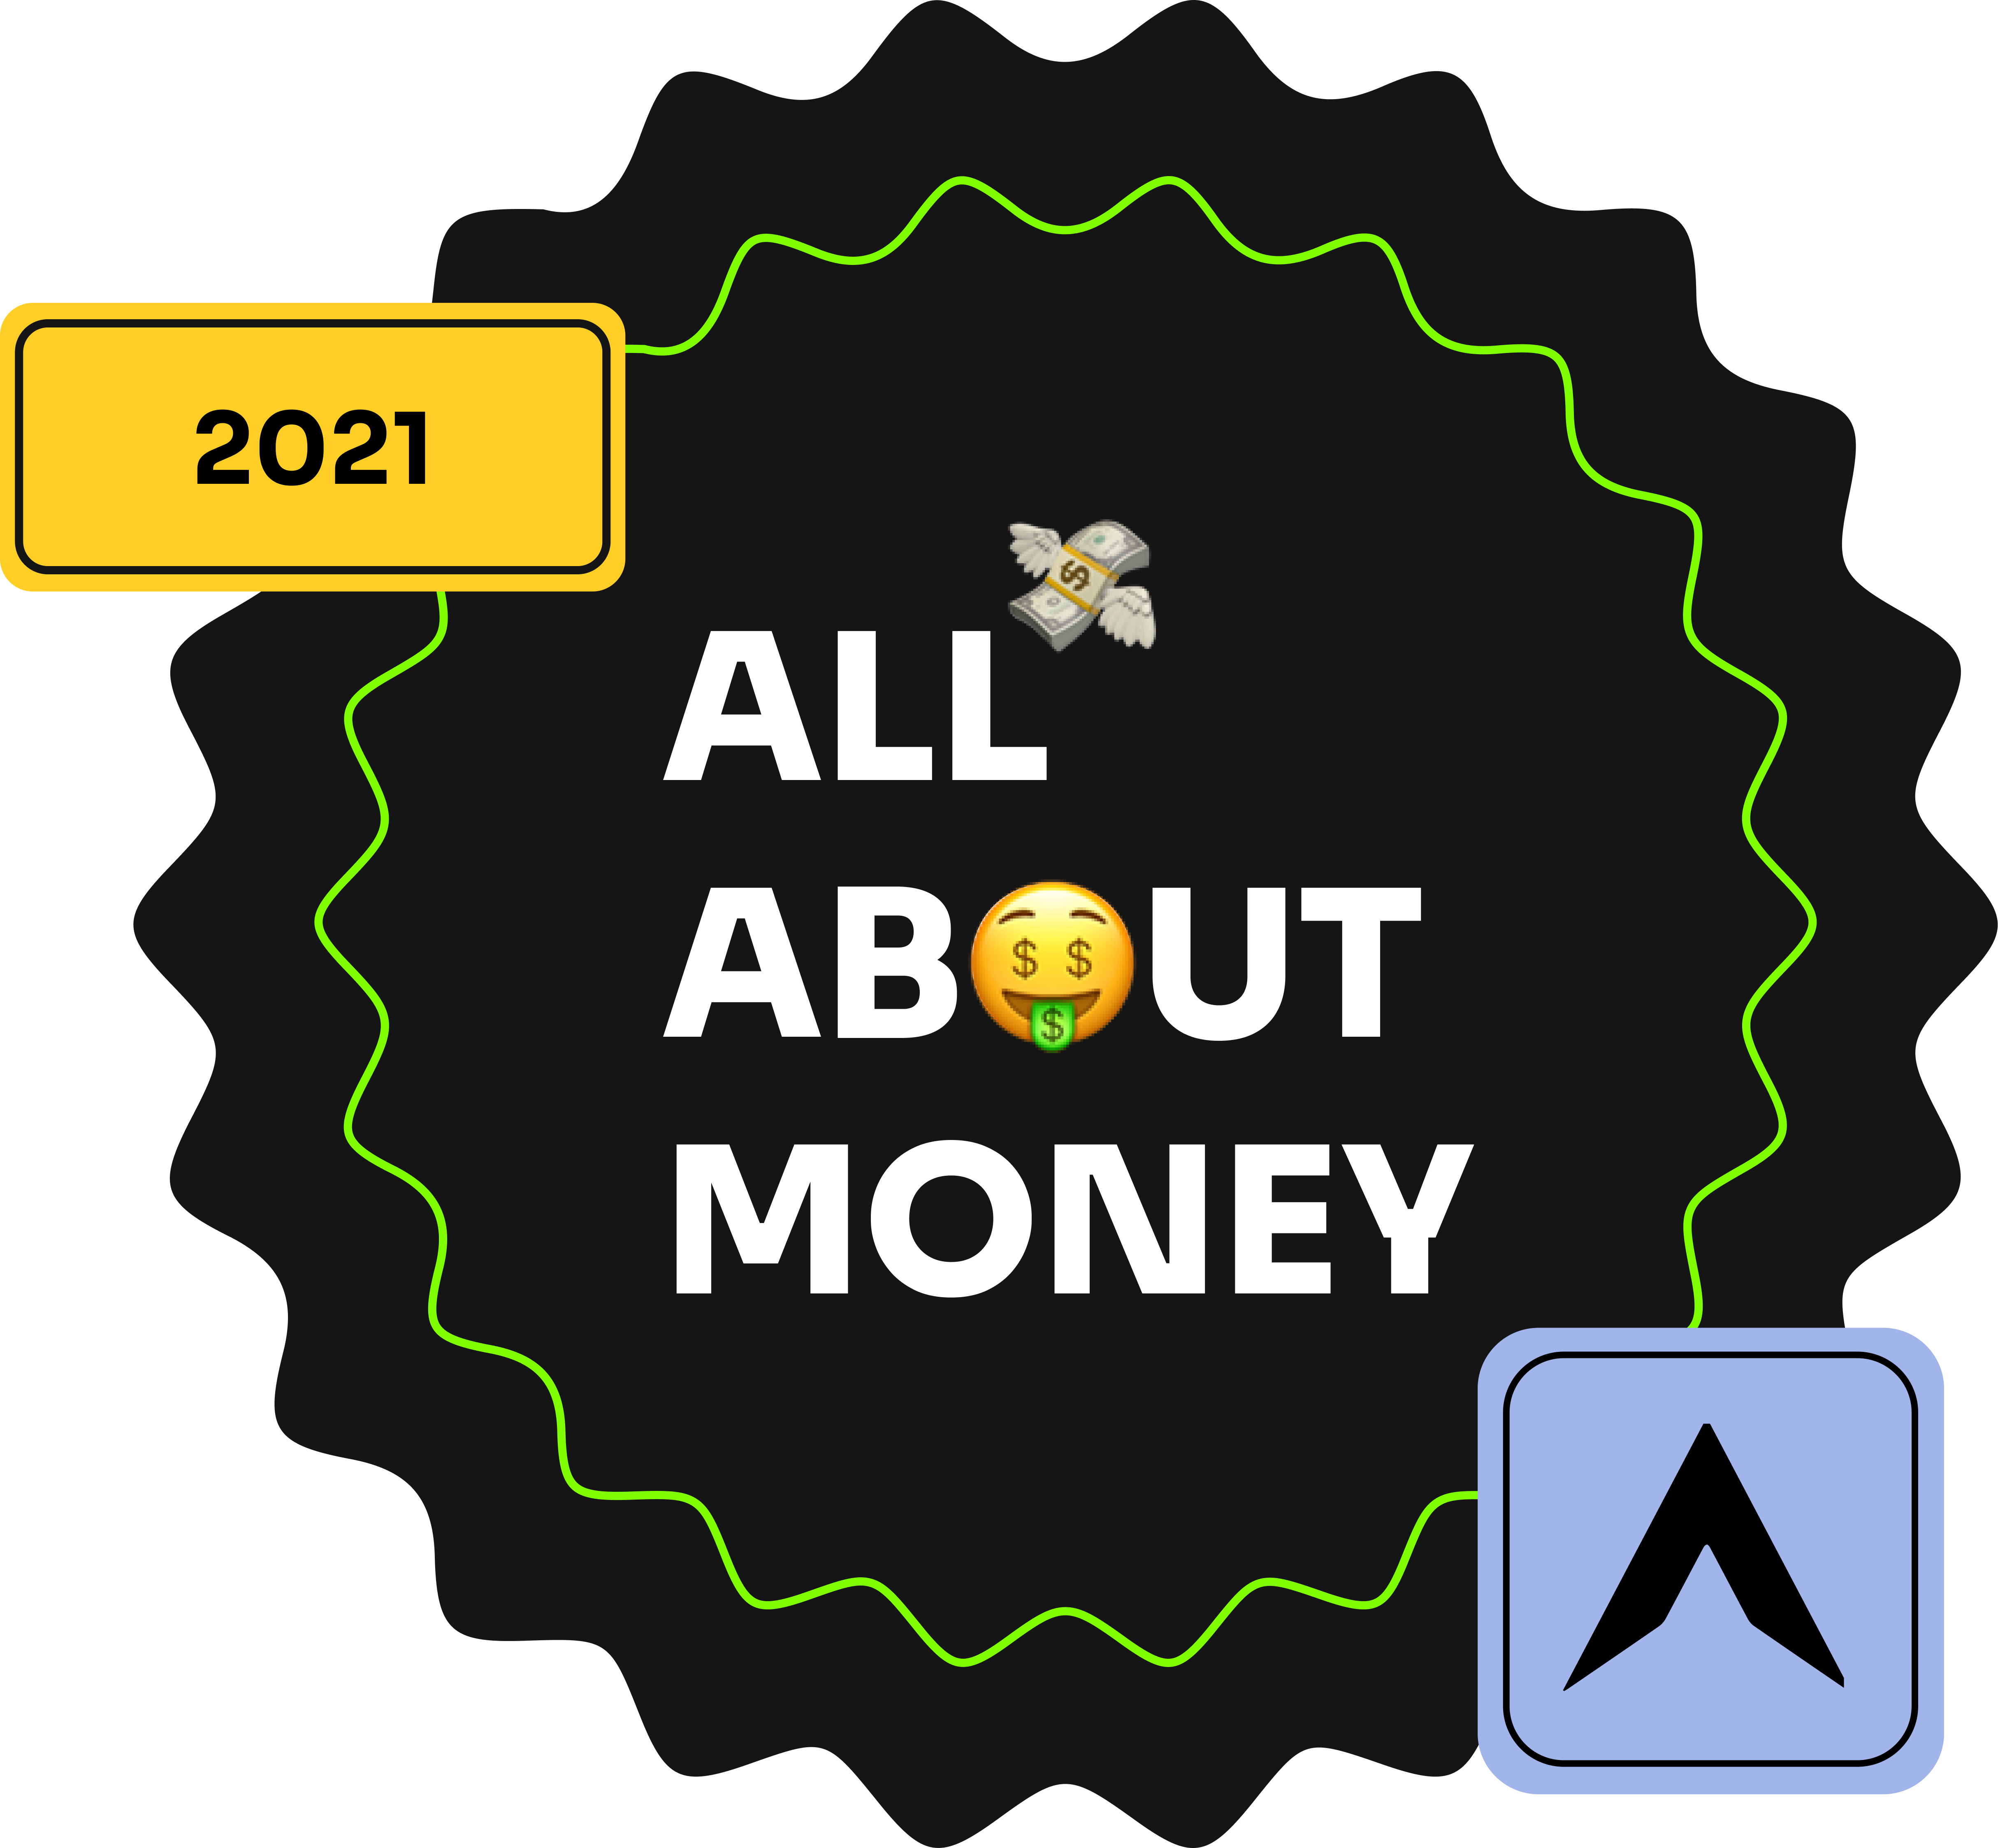 Scenes by Avalon successfully concluded India's Biggest Finance Get- Together 'All About Money 2021'